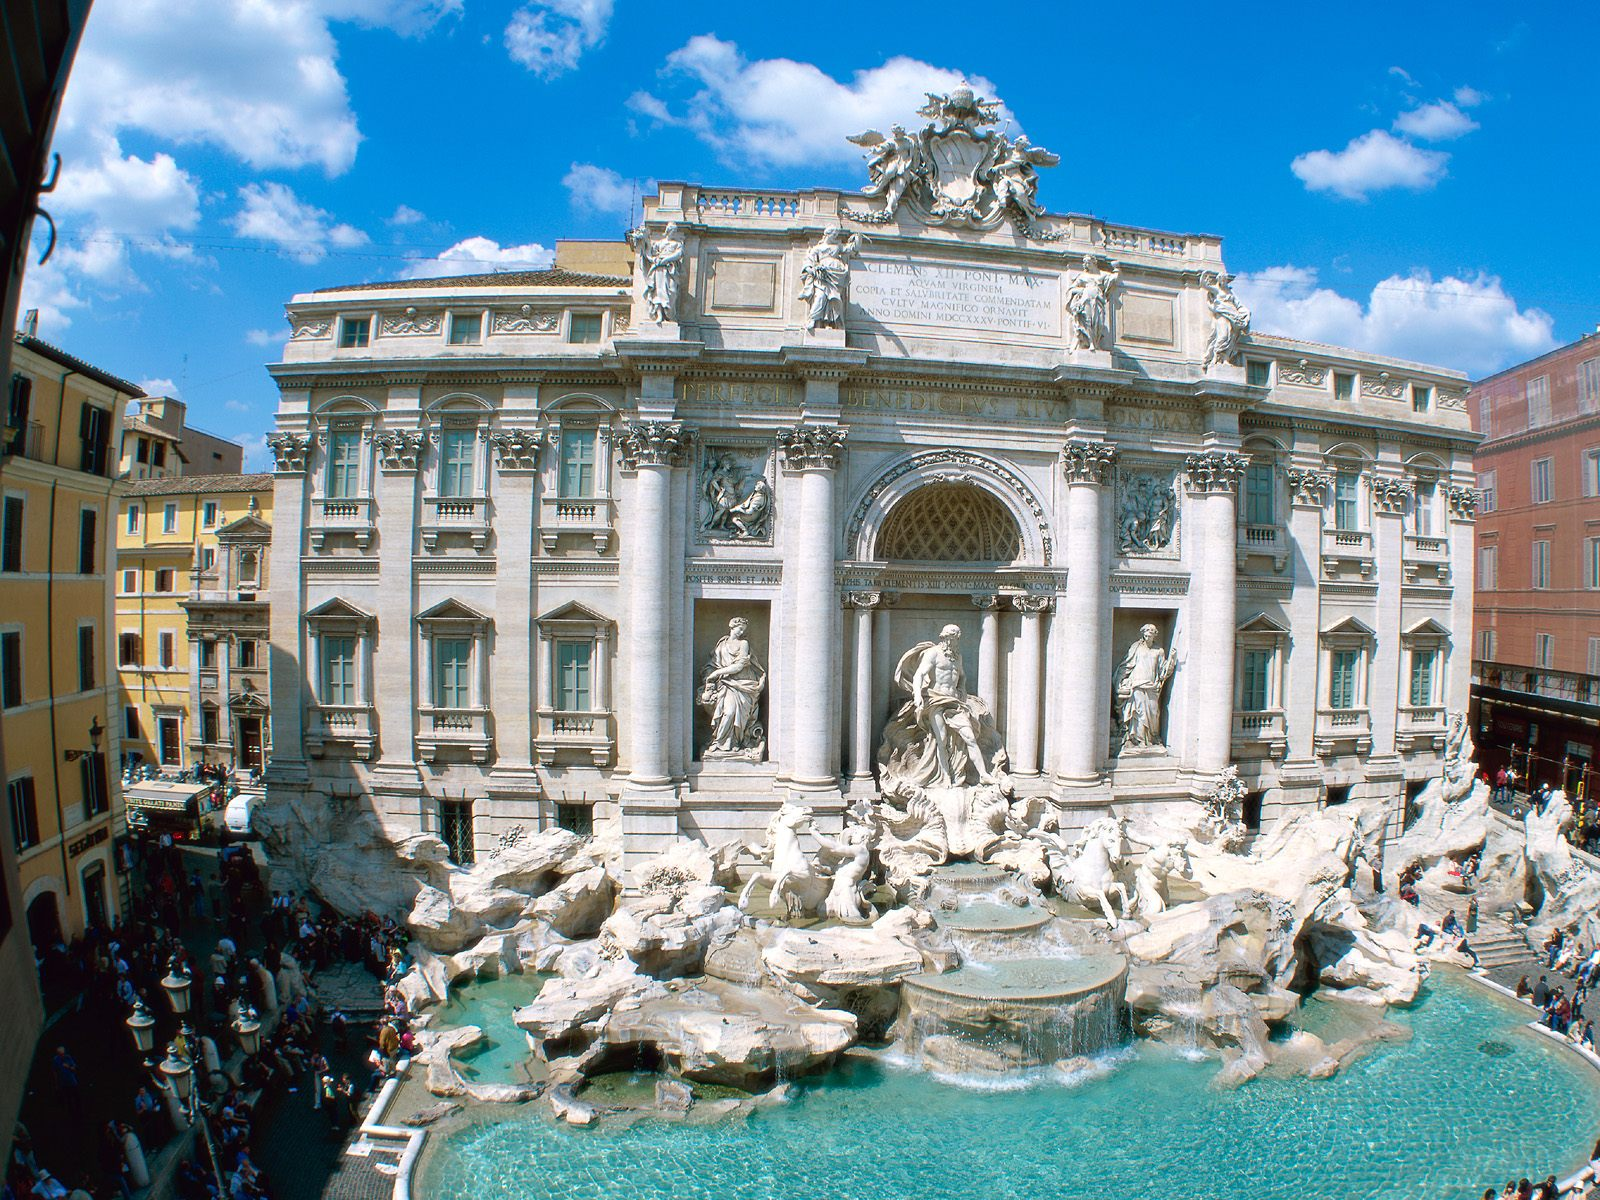 Download Wallpaper  Trevi, Fountain, Rome, Italy iPhone S 1600x1200